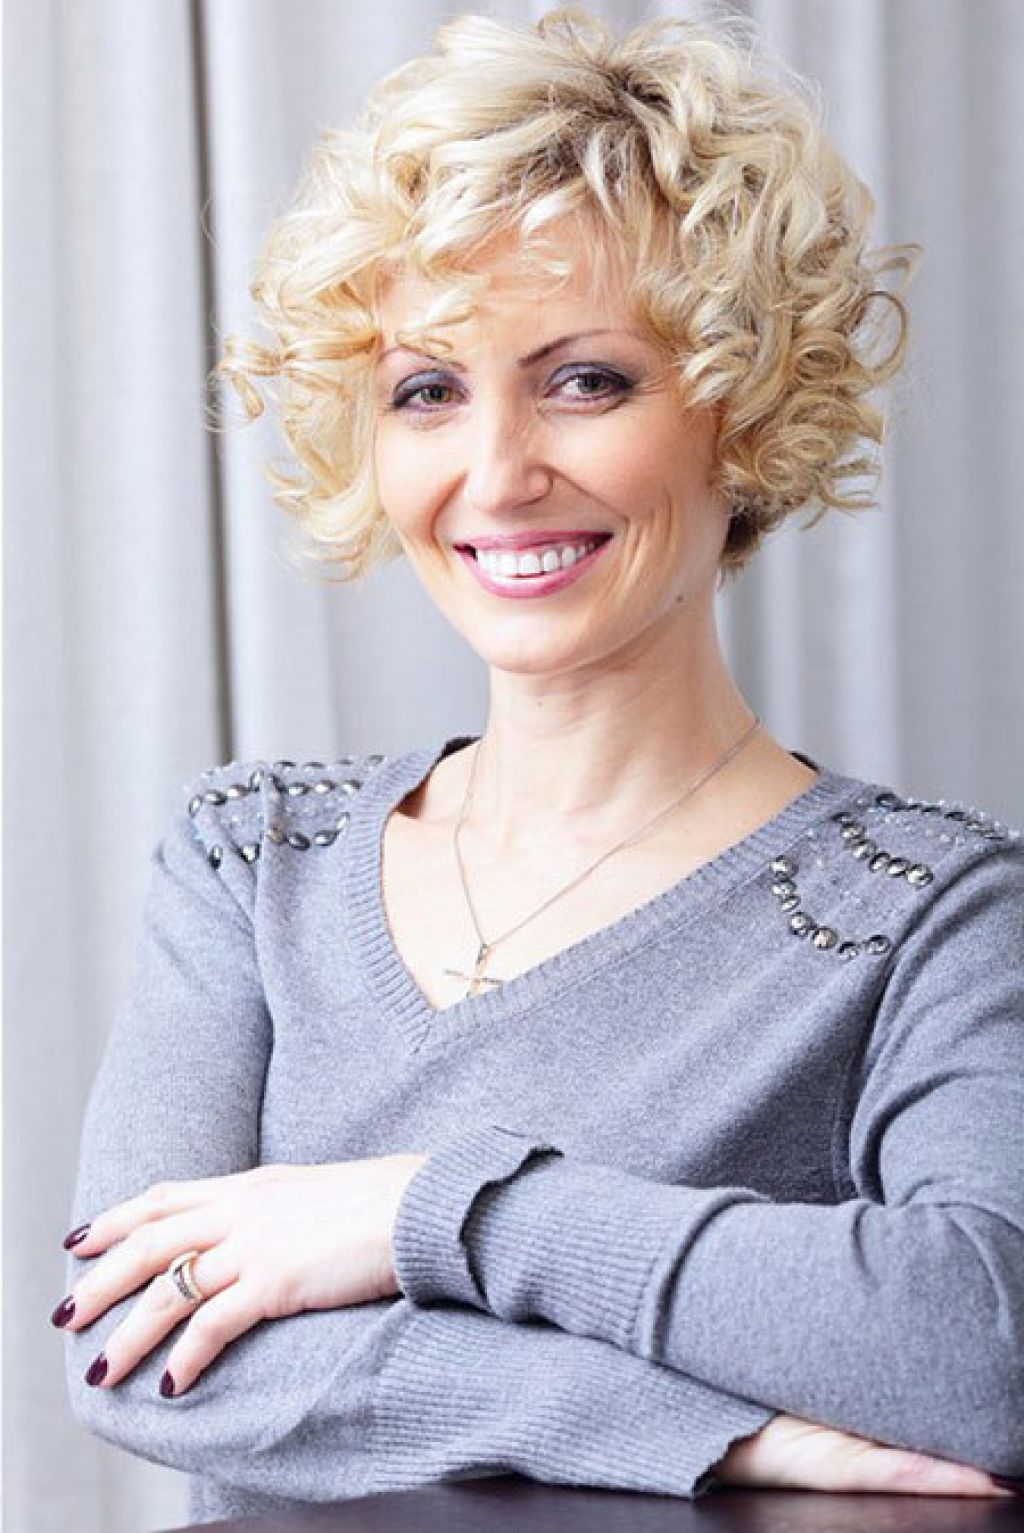 Short Curly Hairstyles For Women Over 50 - Fave HairStyles